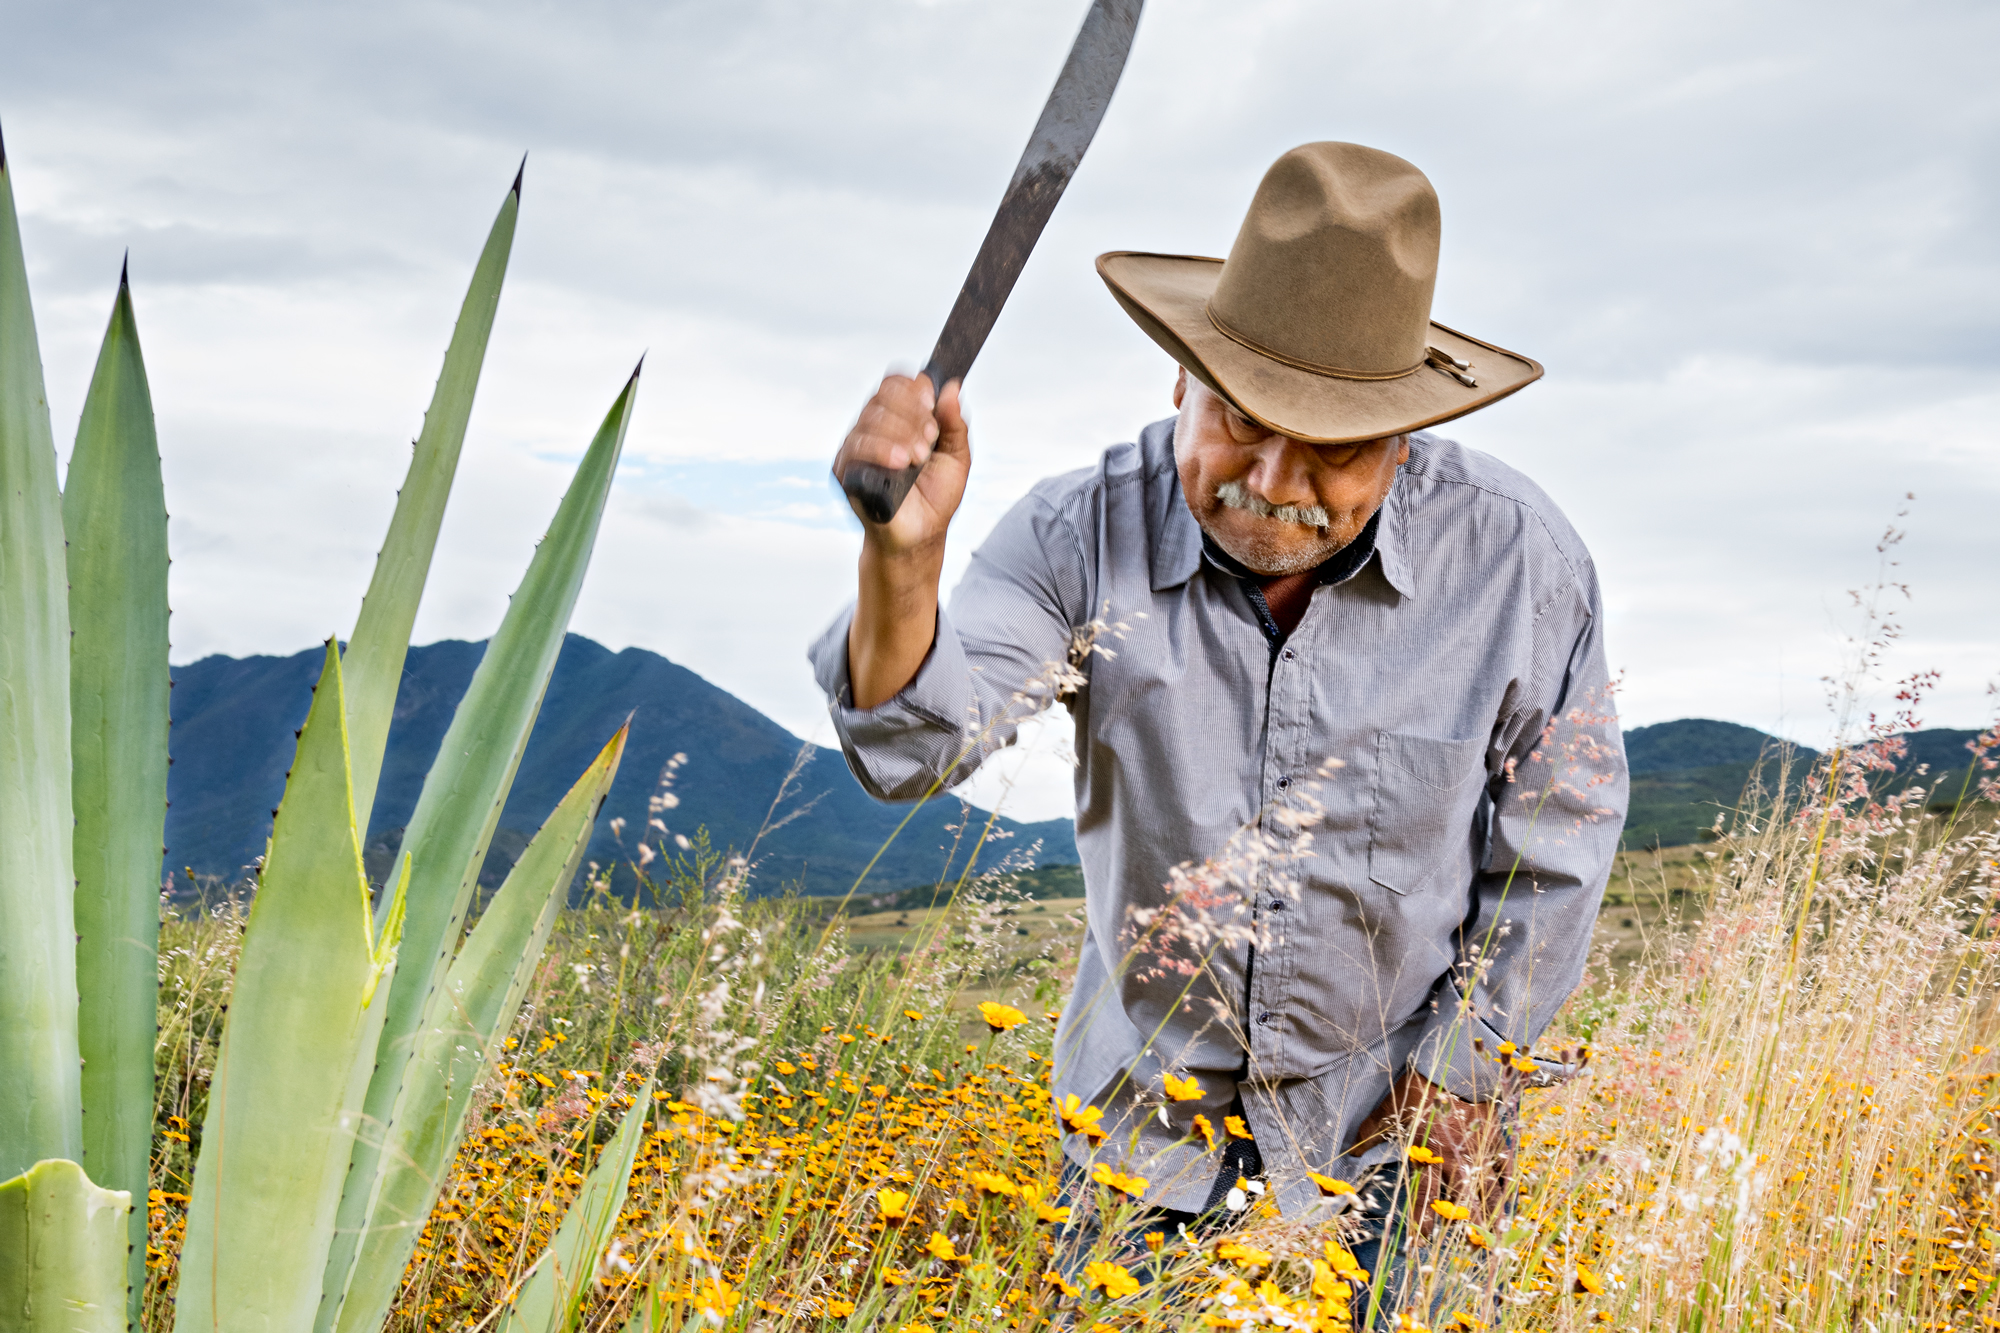 An agave plant is shorn of its sword-like leaves by machete, as mezcalero Arturo Martinez Lopez demonstrates.